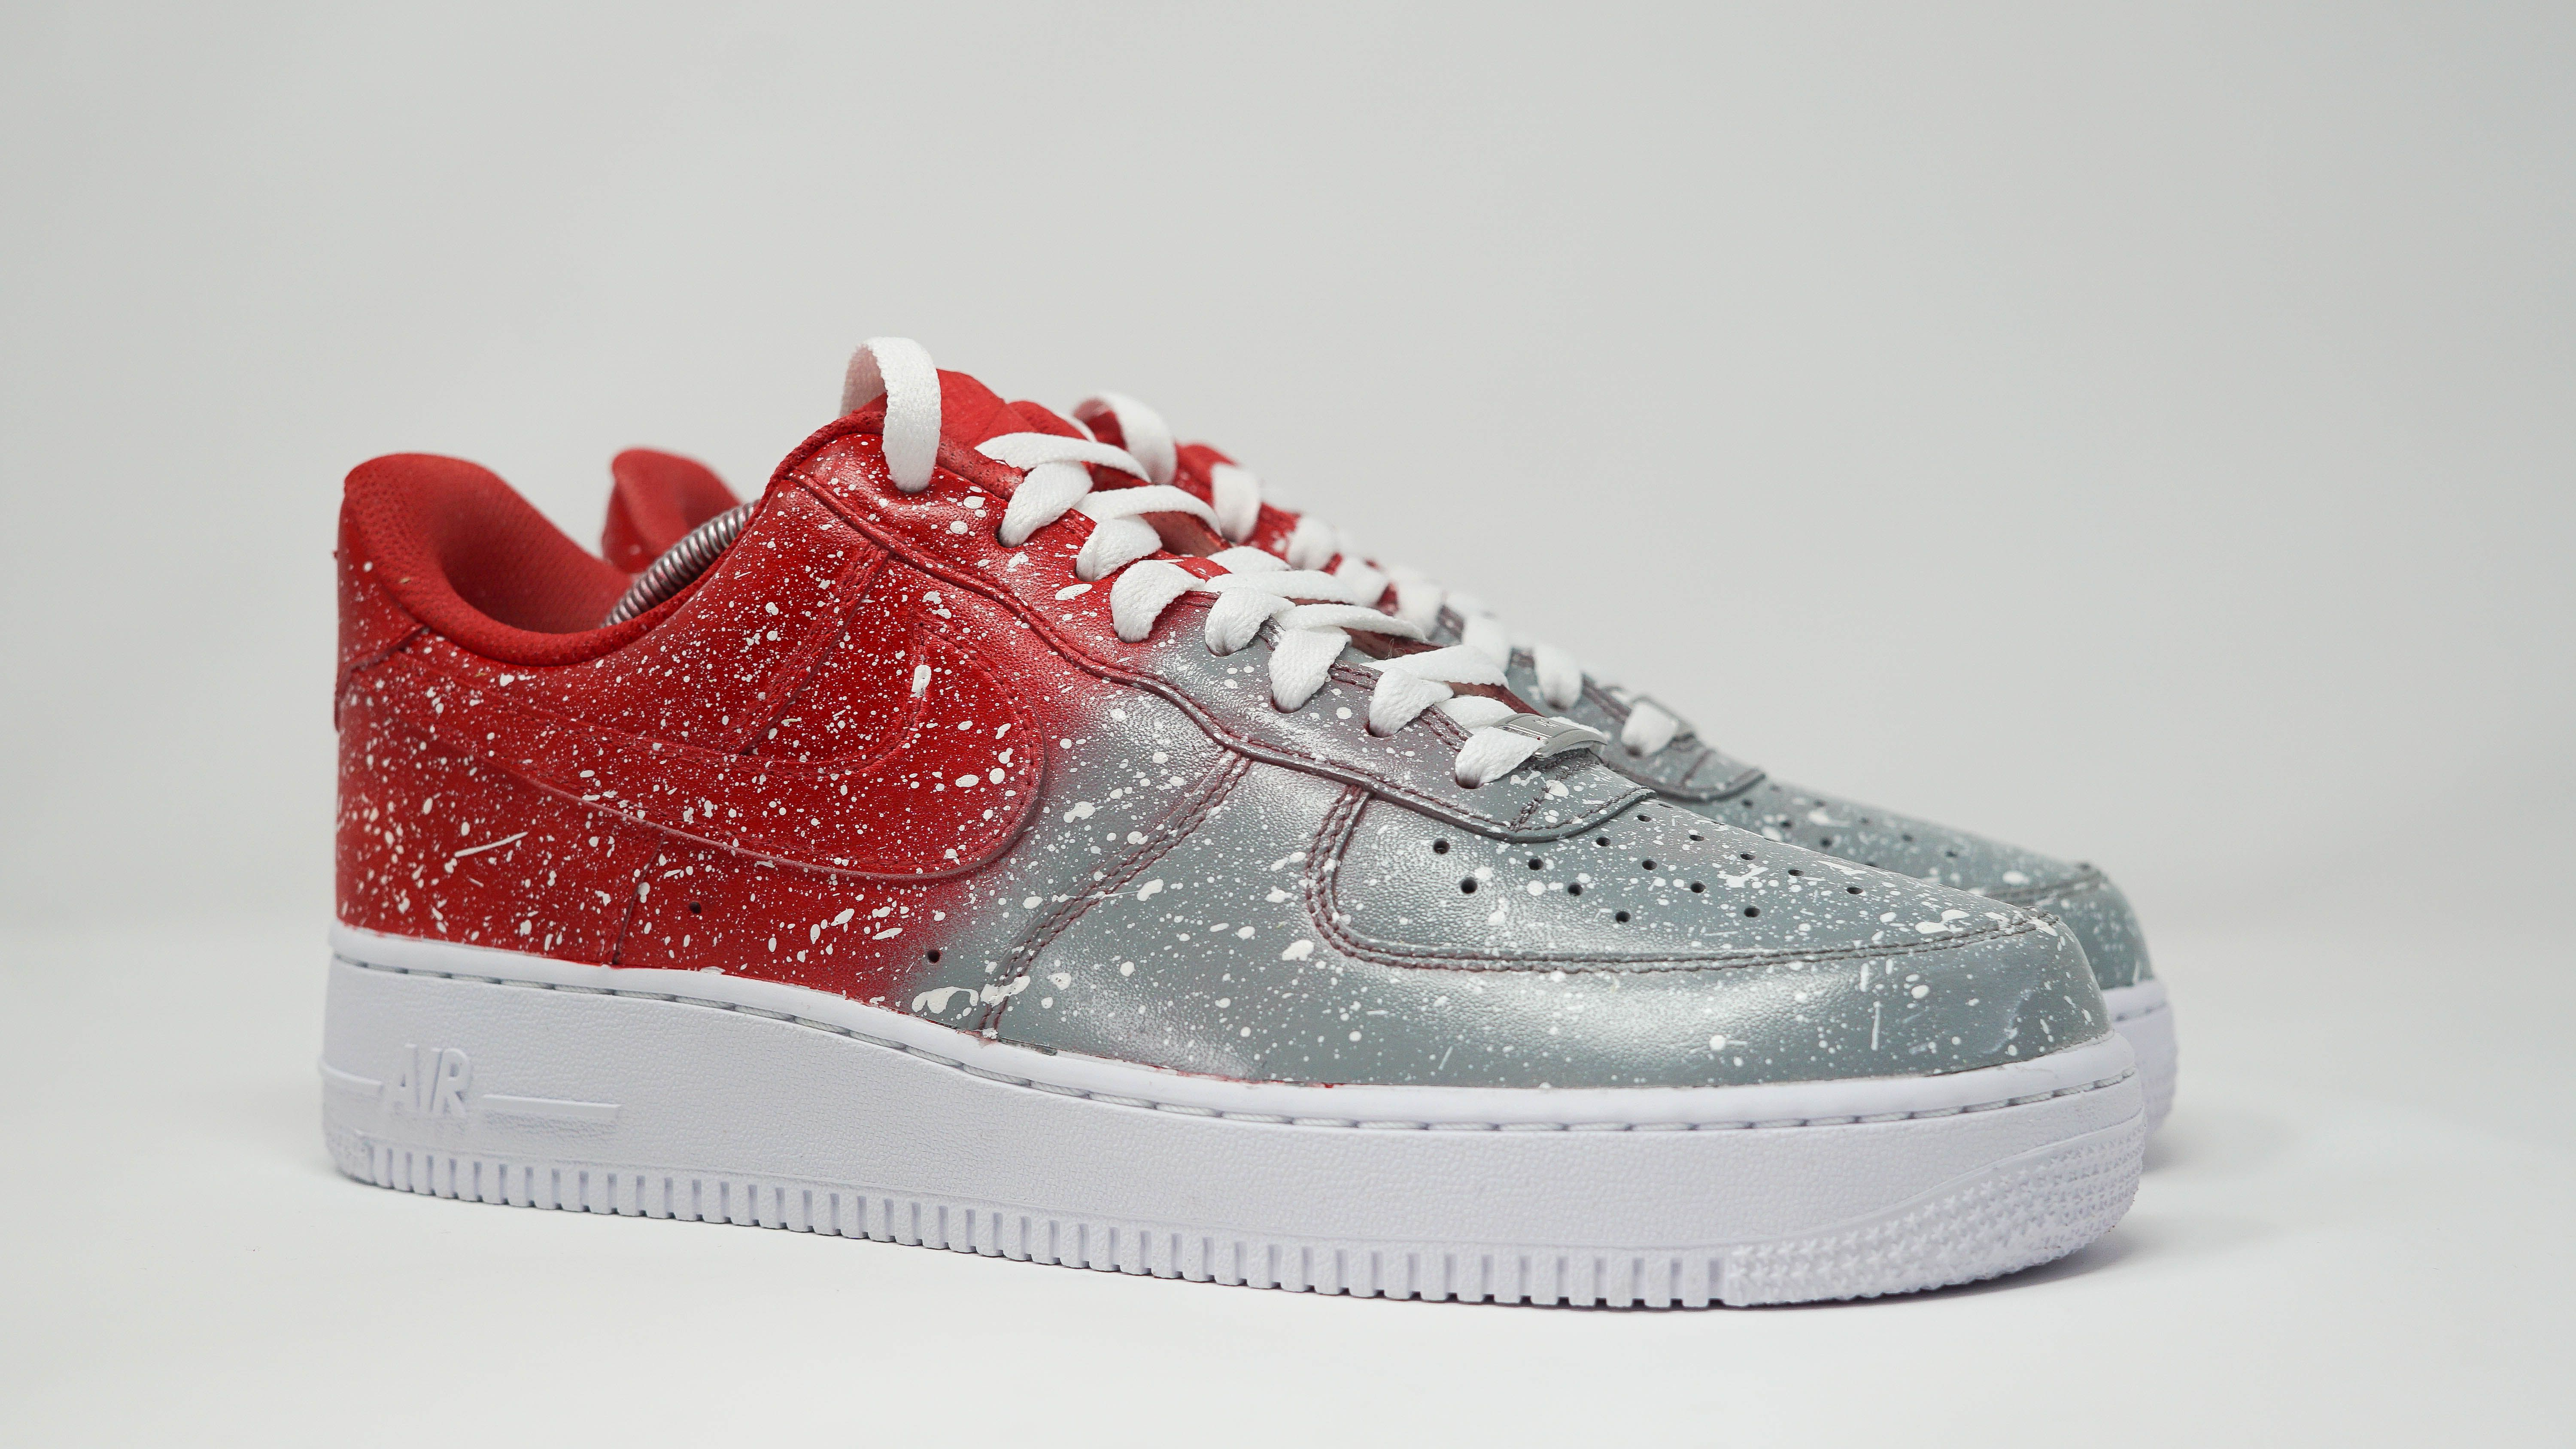 Best craft Nike Air Force 1 Mid Suede Men's Lifestyle Shoes